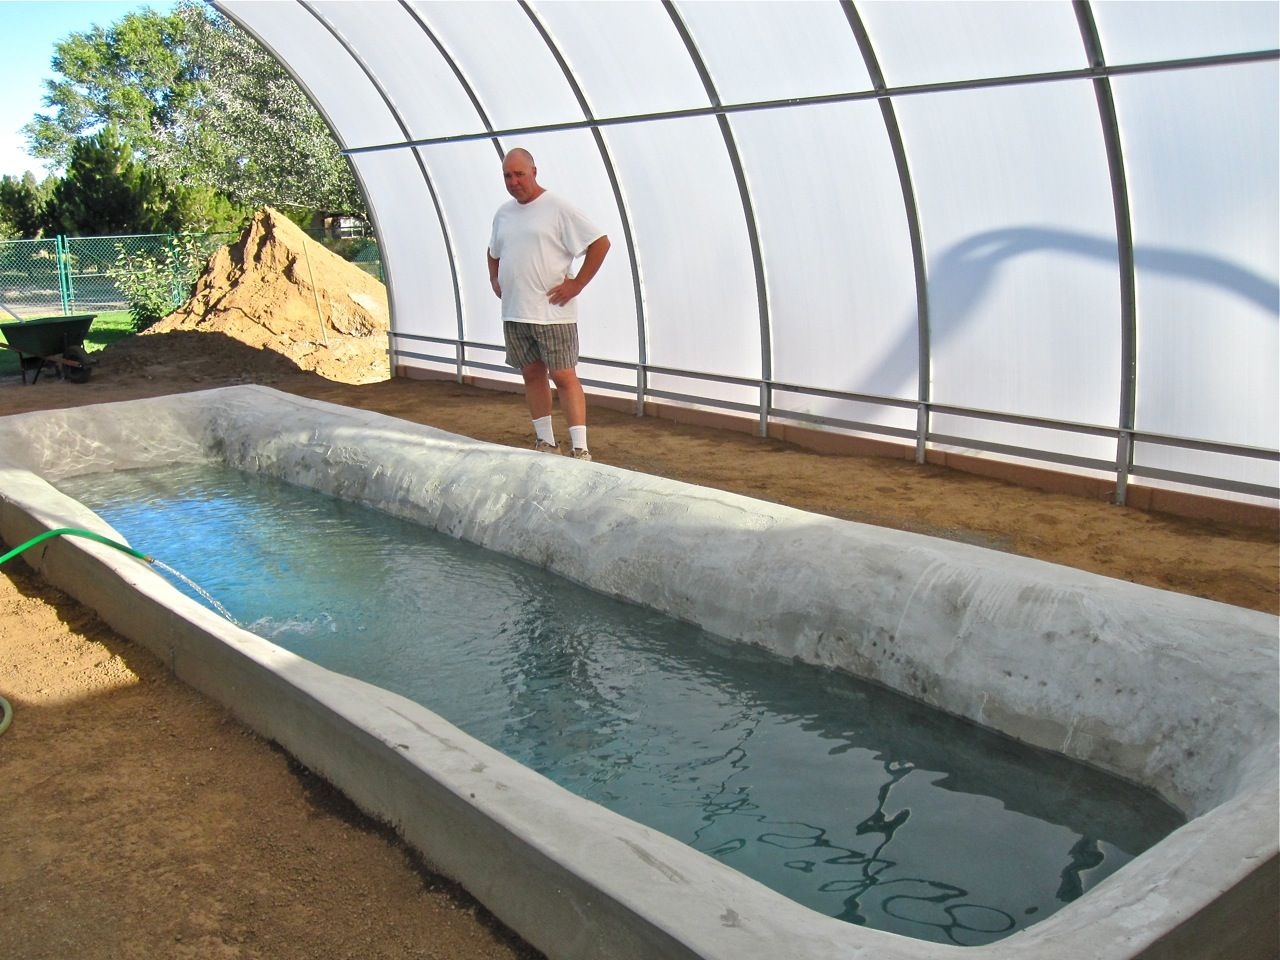 Tilapia pond interesting aquaponics 4000 gallon tank for Koi pond aquaponics